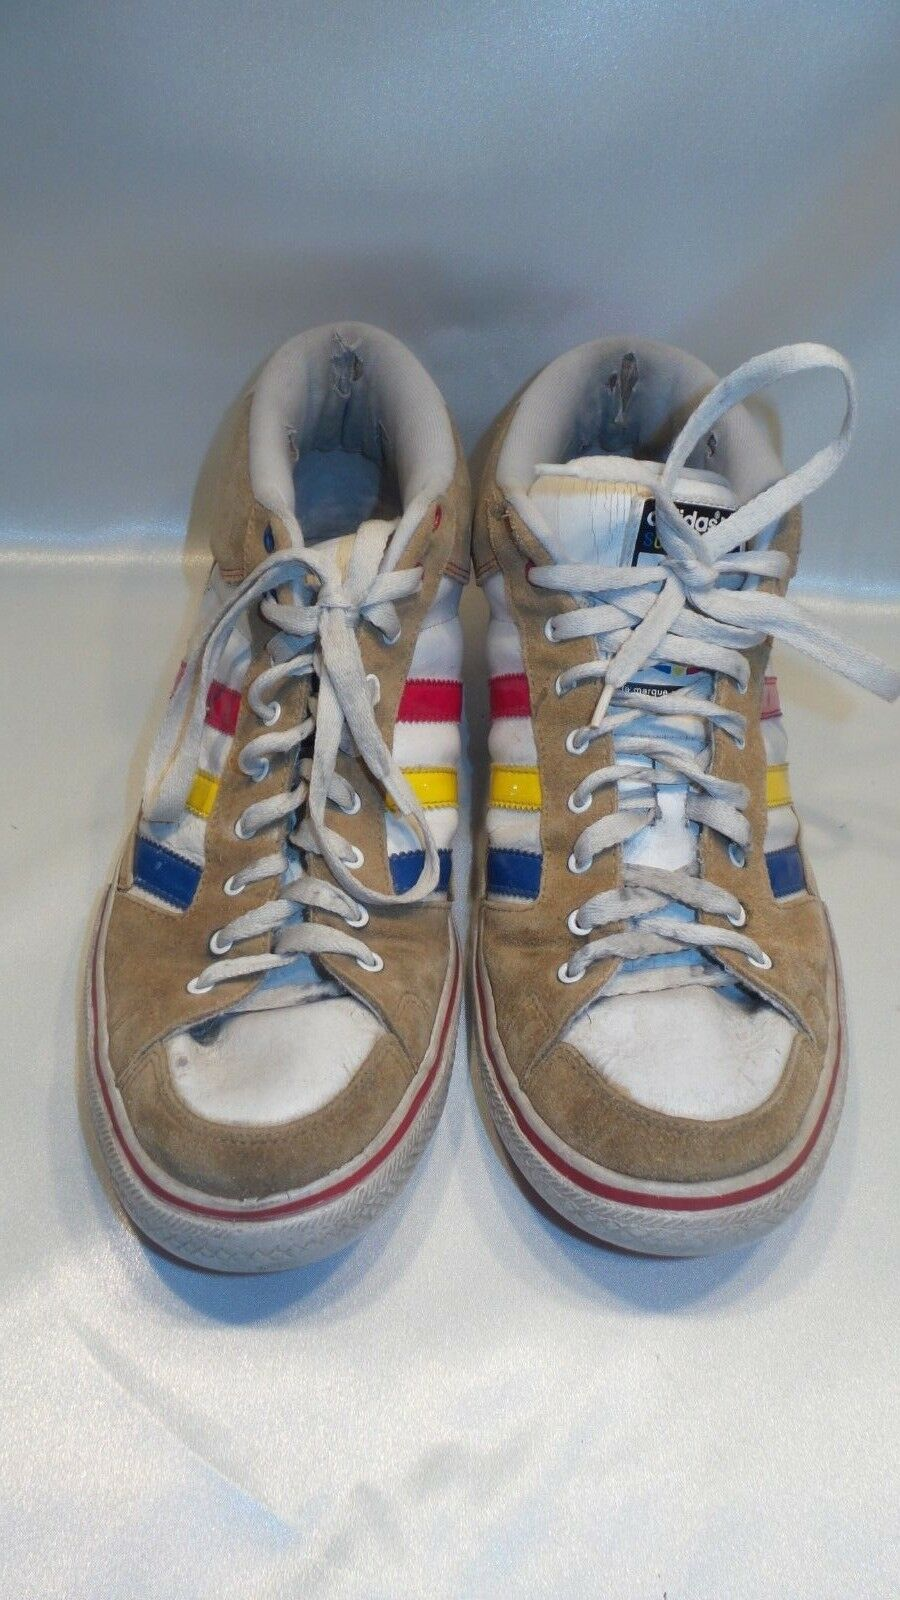 Adidas Shoes Superskate Hightop Athletic Skate Shoes Adidas Size 10-11 Red Yellow Blue 649baa